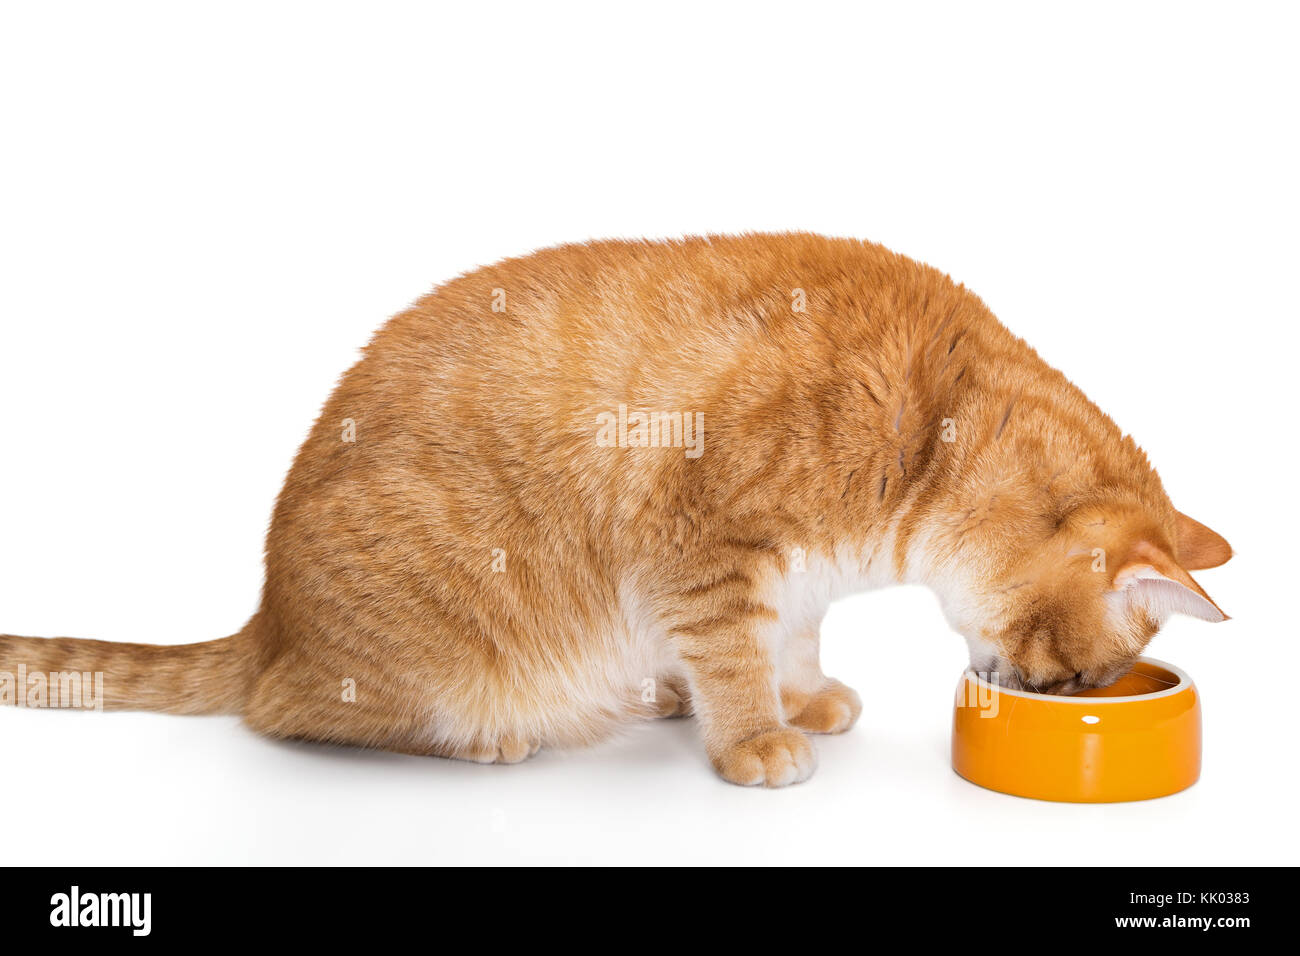 how to get kitten to eat dry food